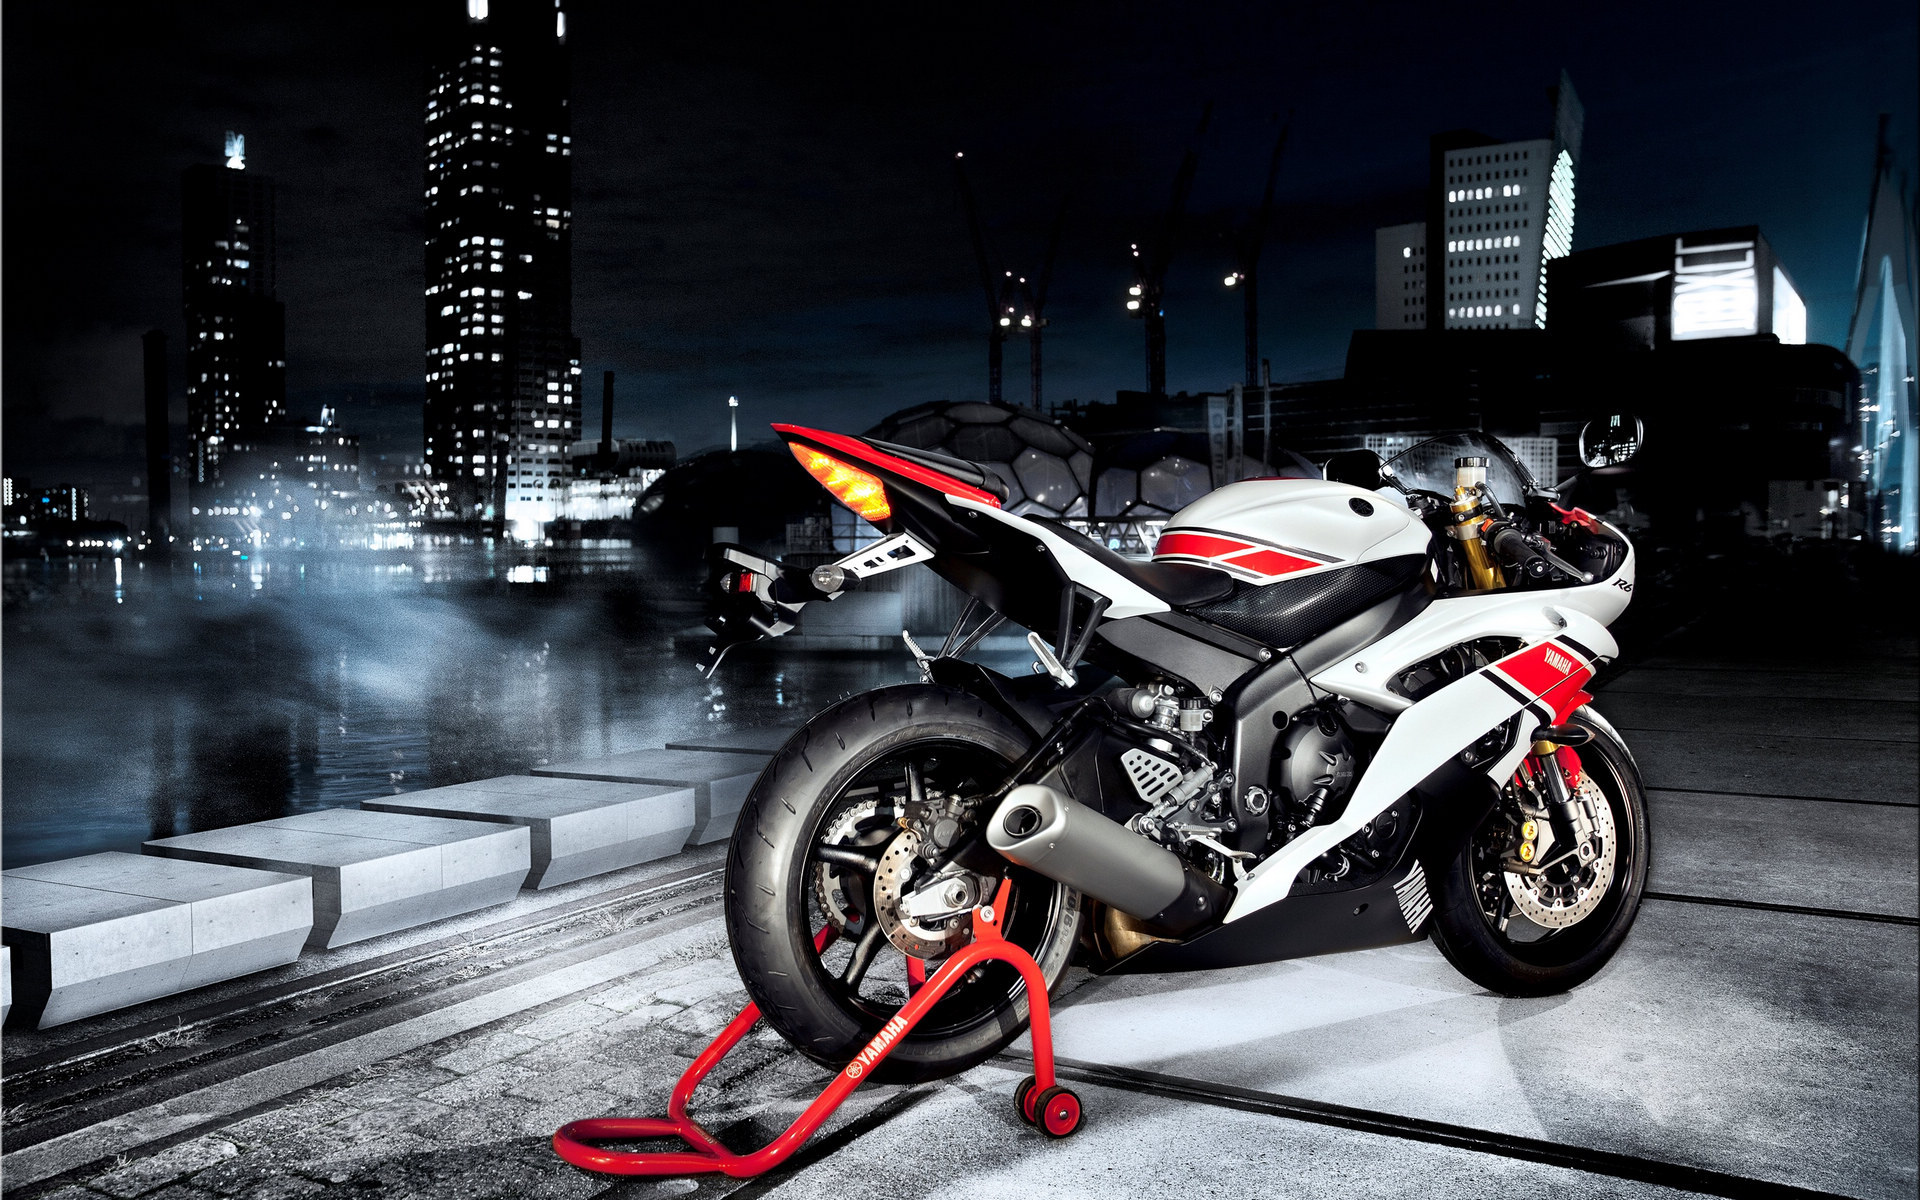 yamaha r6 wallpaper 2 1920x1200